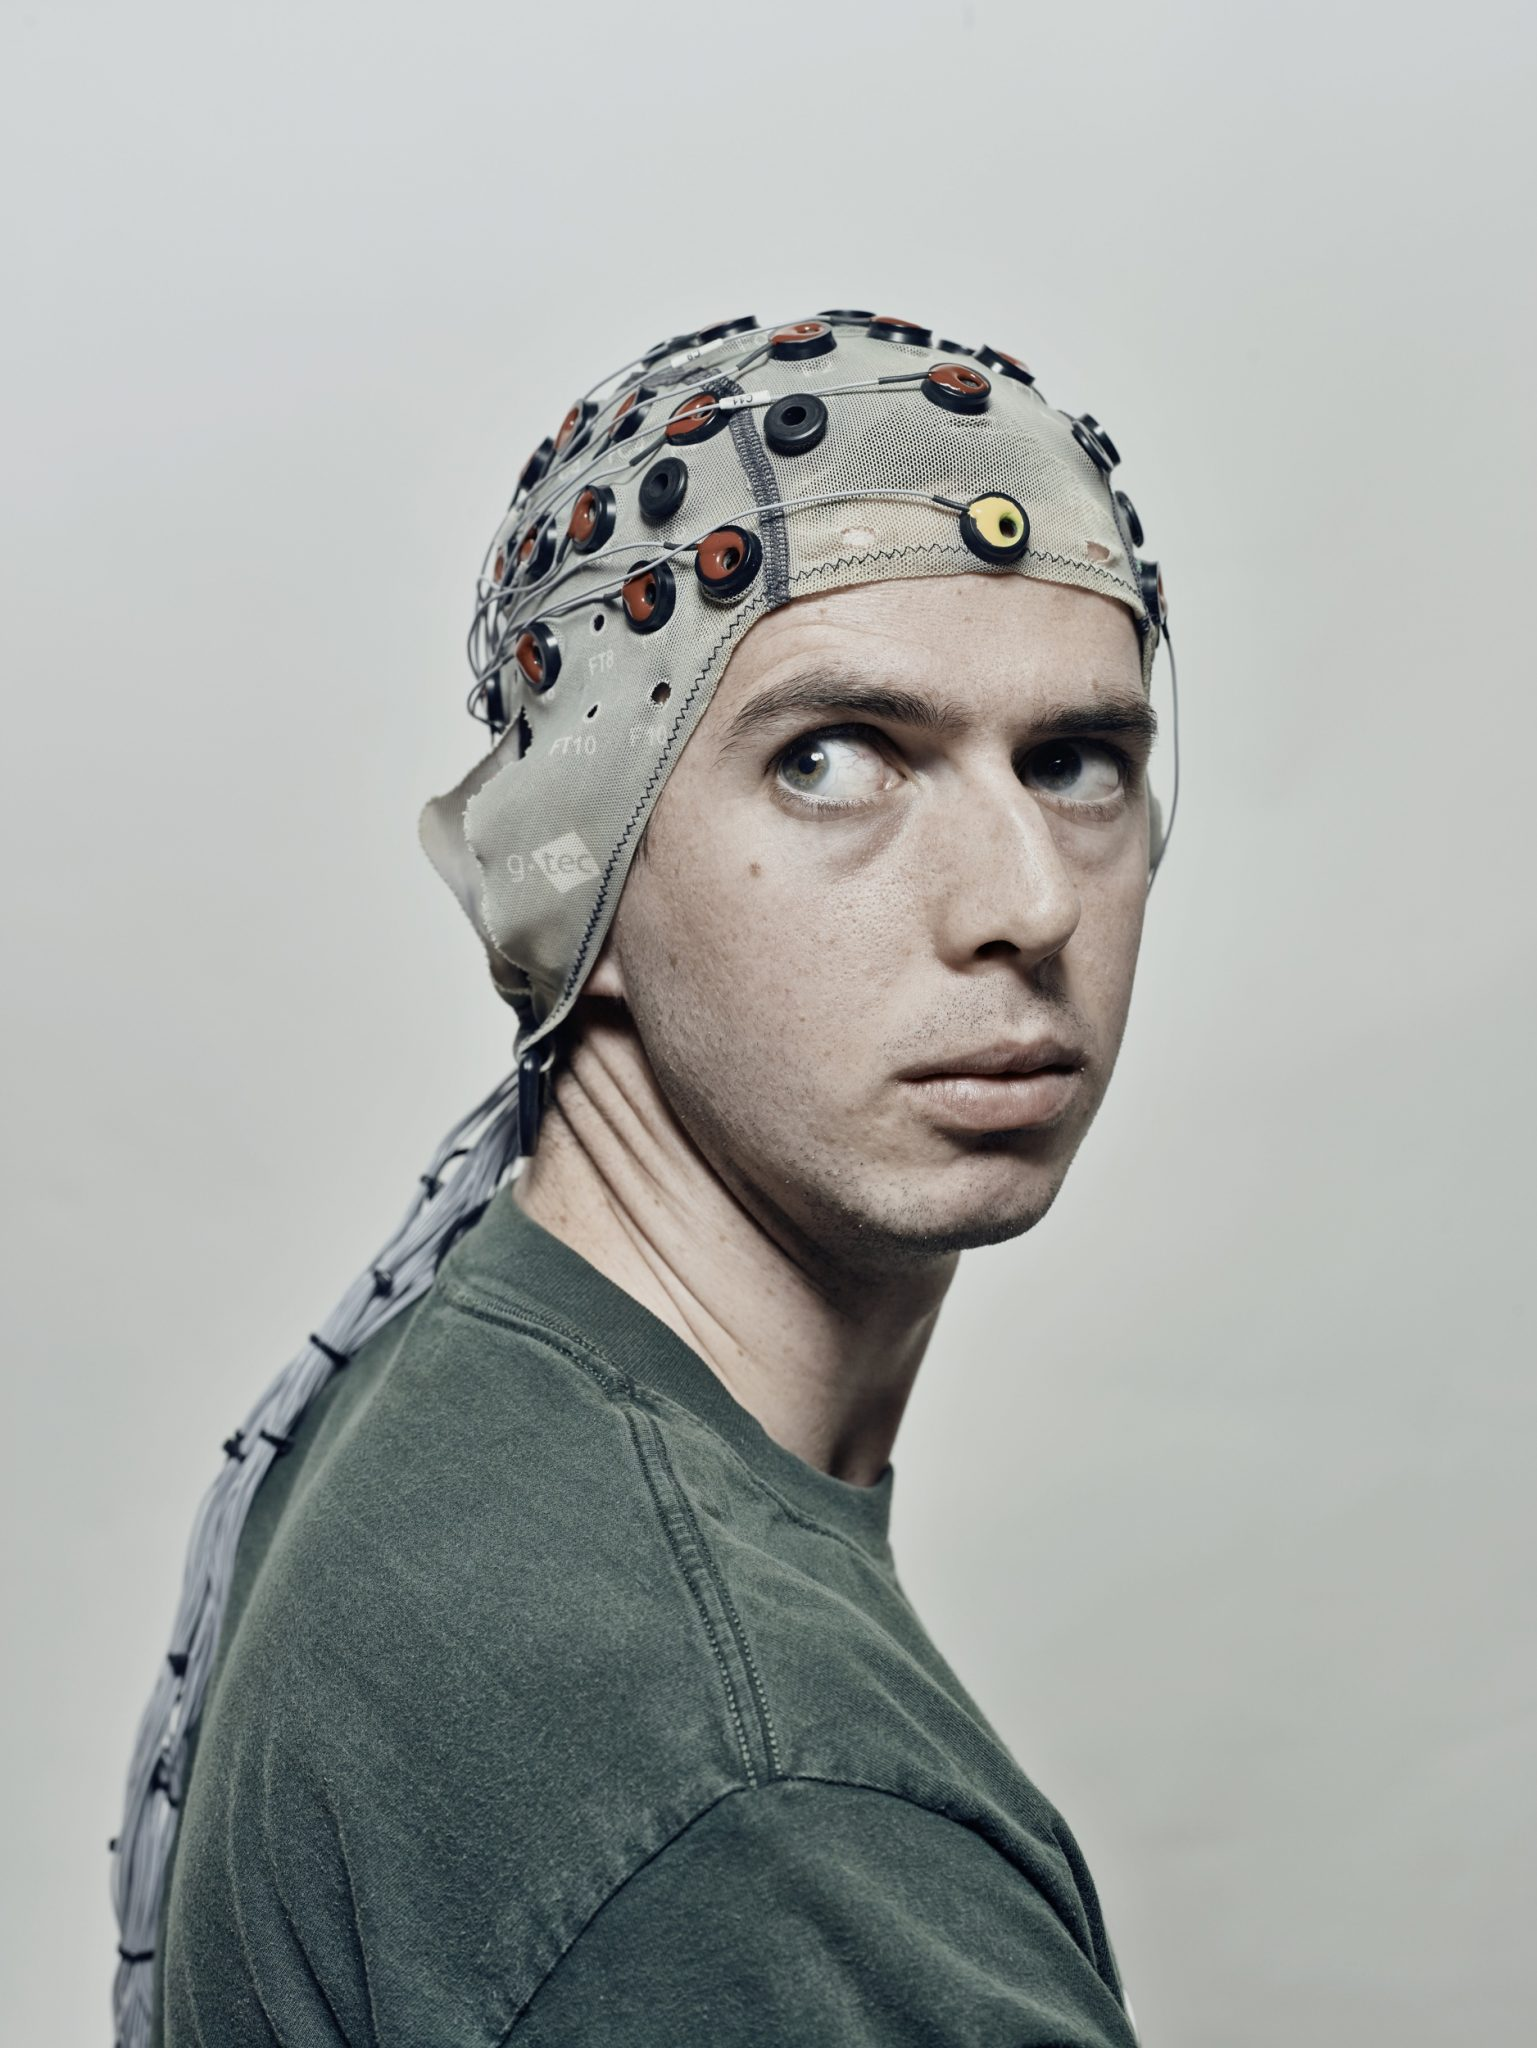 Robotics Department. Researchers at the Computer Science and Artificial Intelligence Laboratory at MIT have designed a system that allows Baxter to use a person's brain waves and hand gestures to make decisions and act on them. Massachusetts Institute of Technology, Cambridge, USA, 2017